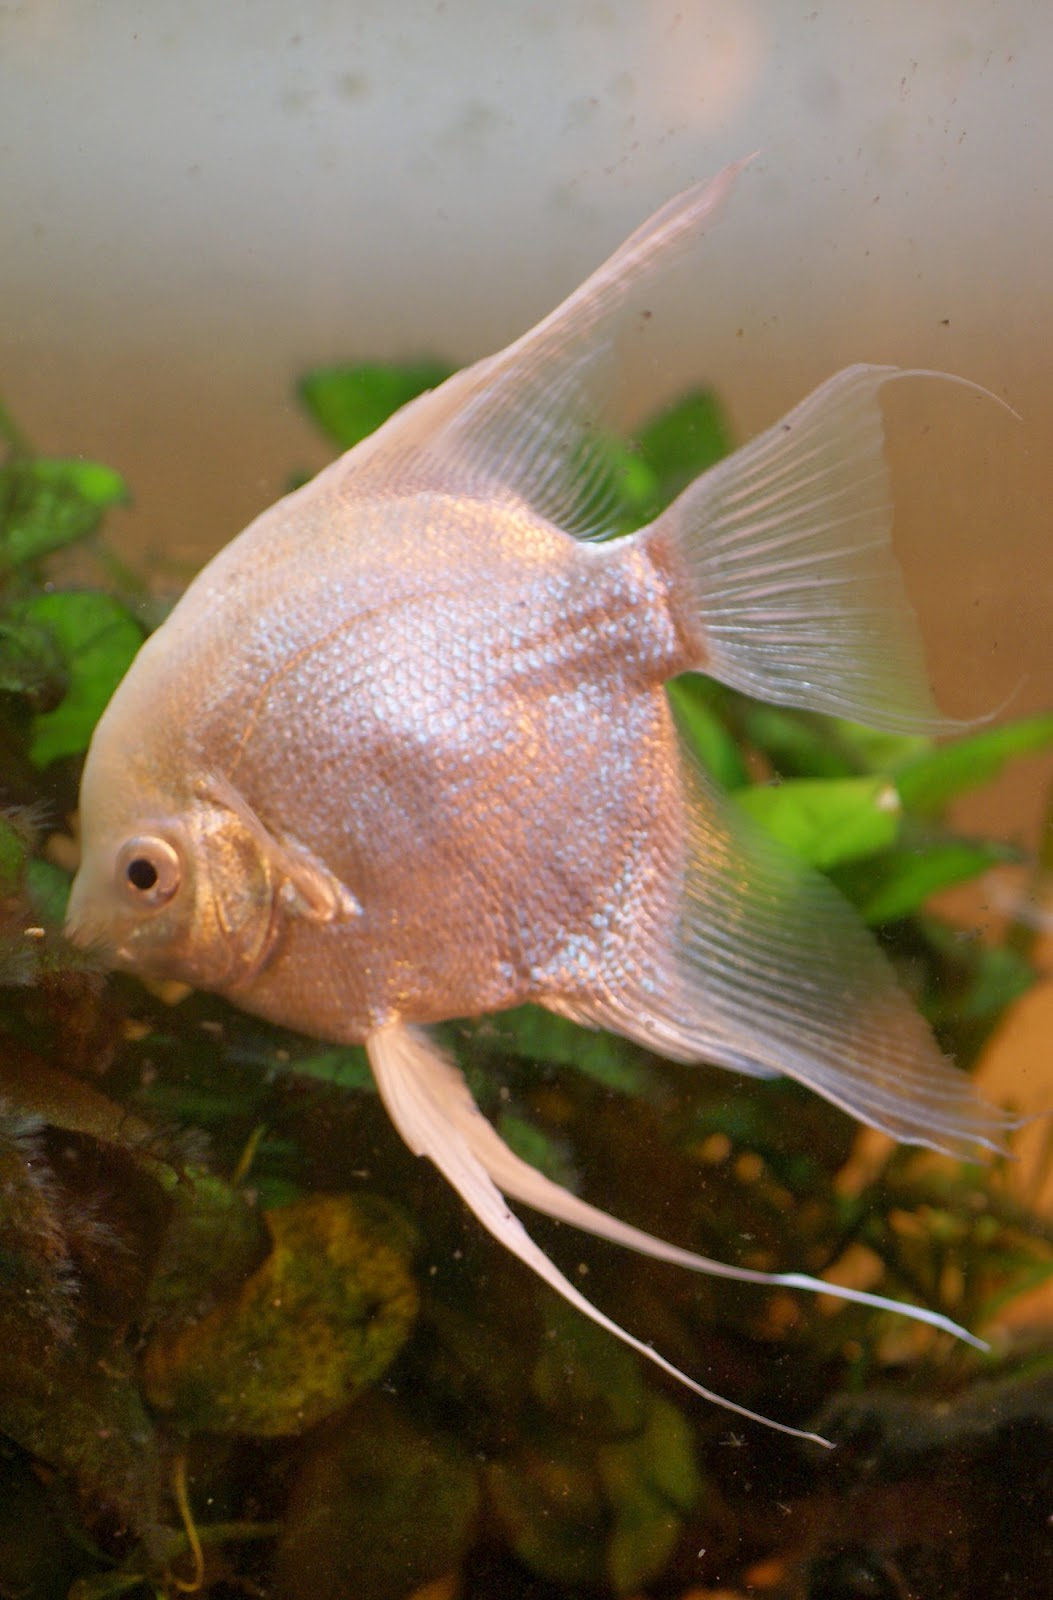 Blok888: Top 10 Most Beautiful Freshwater Fish in the world 2